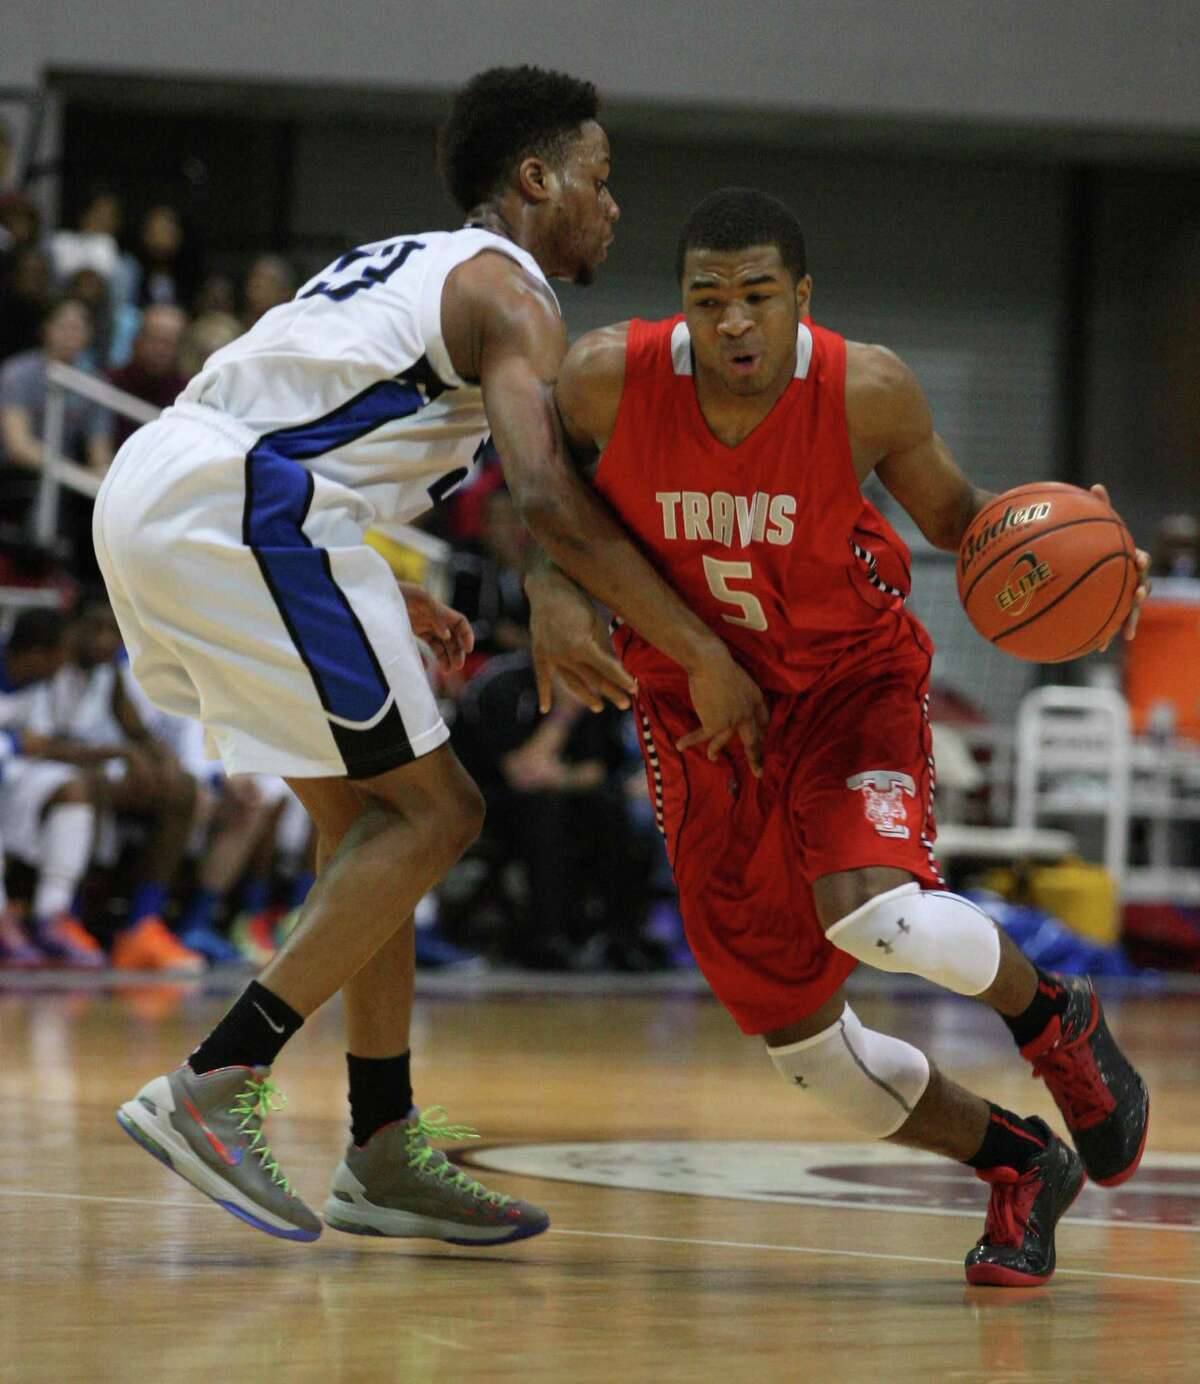 Travis' Andrew Harrison and the Tigers will open their push for a state championship against Richardson Berkner in Austin Friday night.